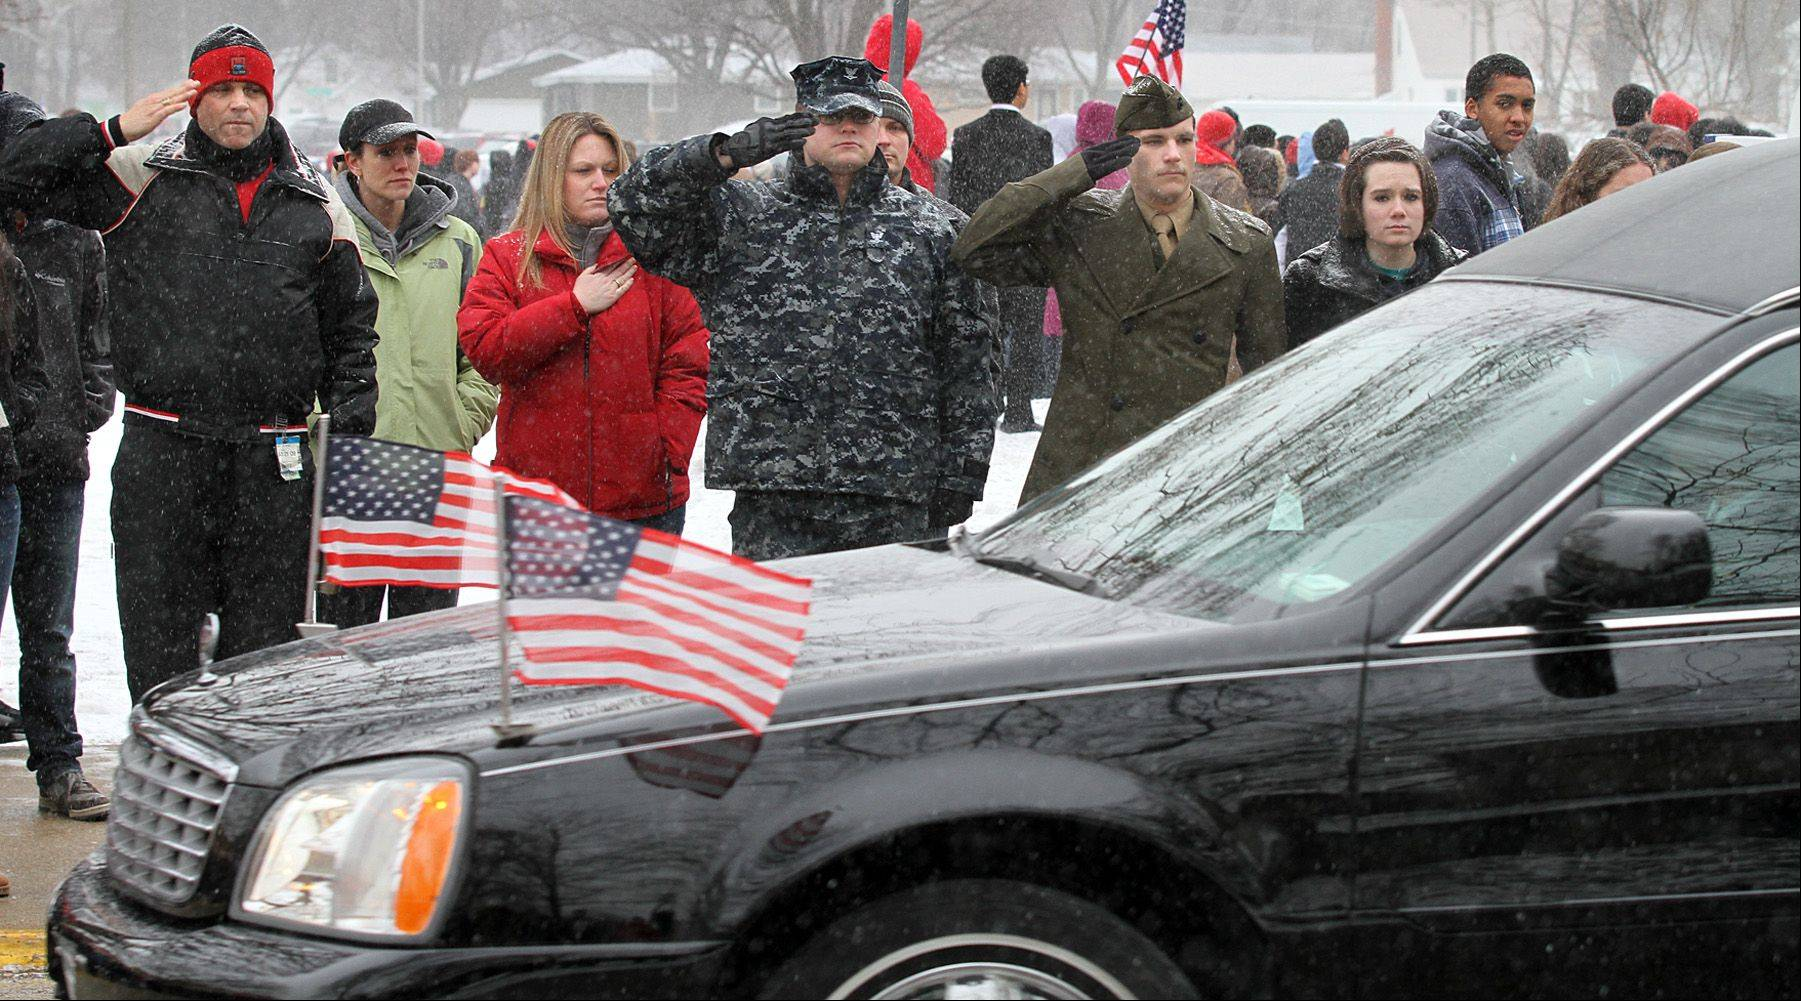 A hearse carrying the body of SPC Christopher Patterson proceeds down Commonwealth Avenue on the campus of West Aurora High School where students, staff and military personnel stood and paid their respects on Friday.